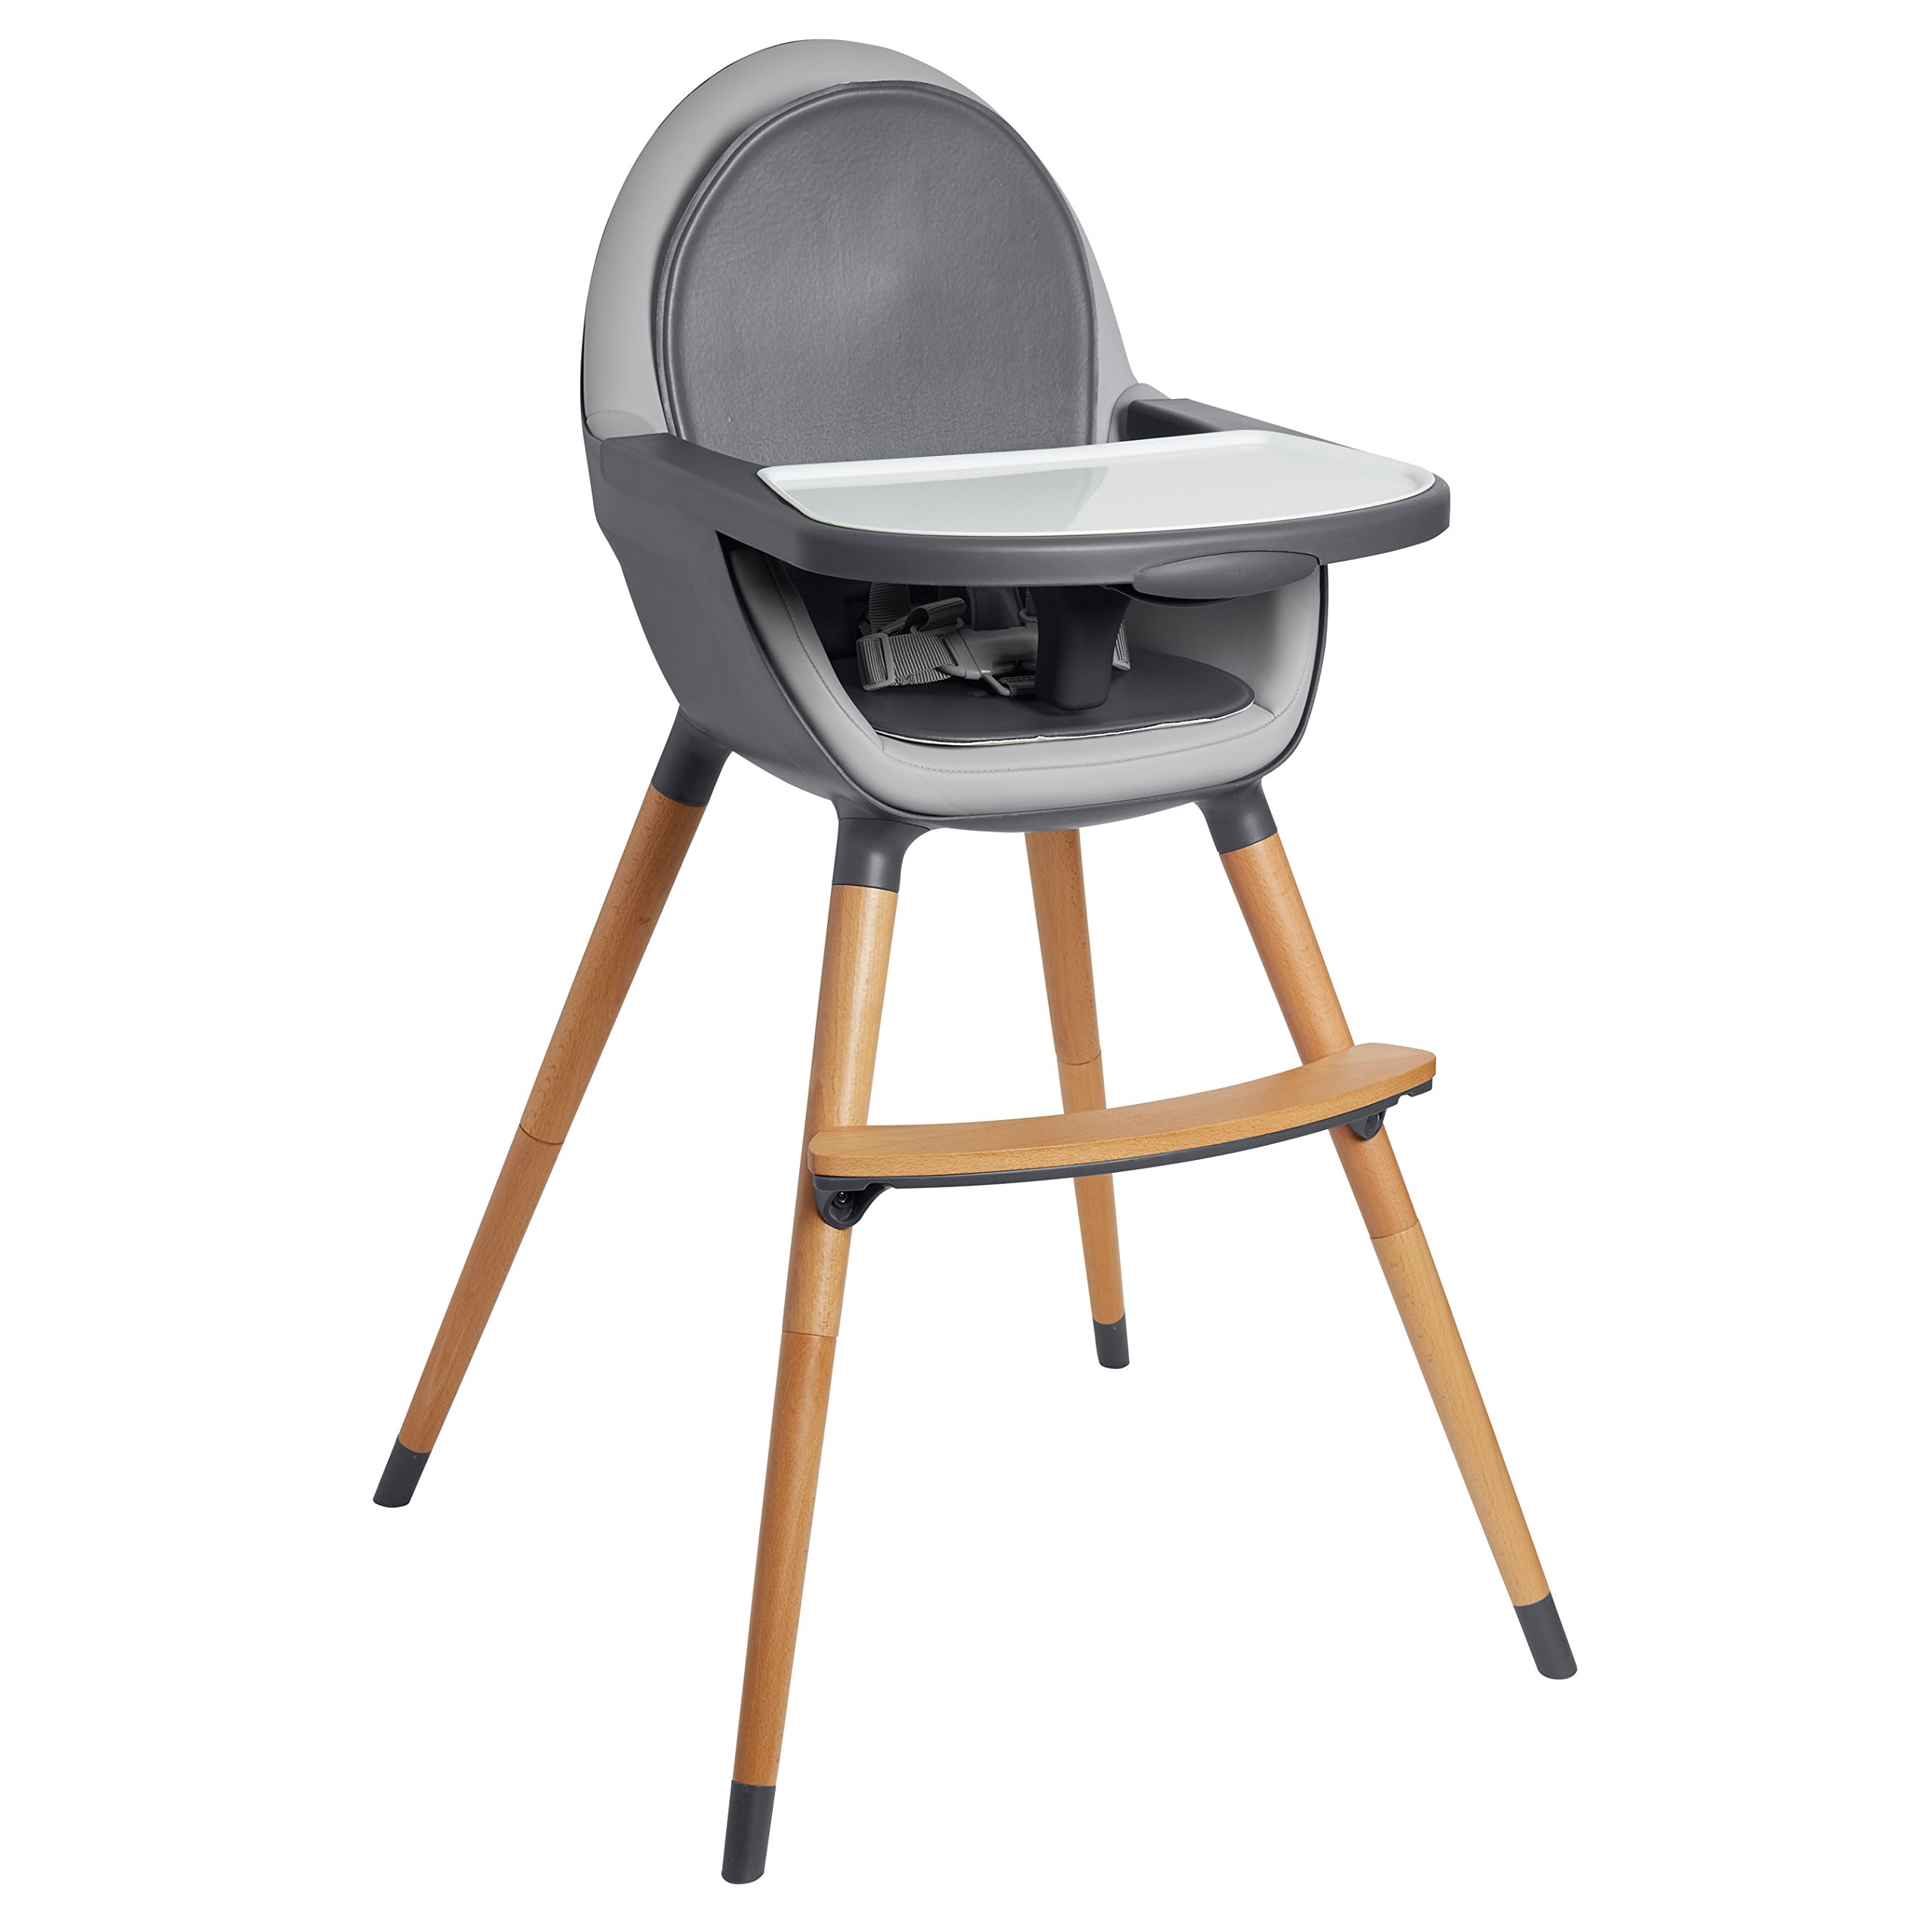 Skip Hop Tuo Convertible High Chair, Charcoal Grey by Skip Hop (Image #1)